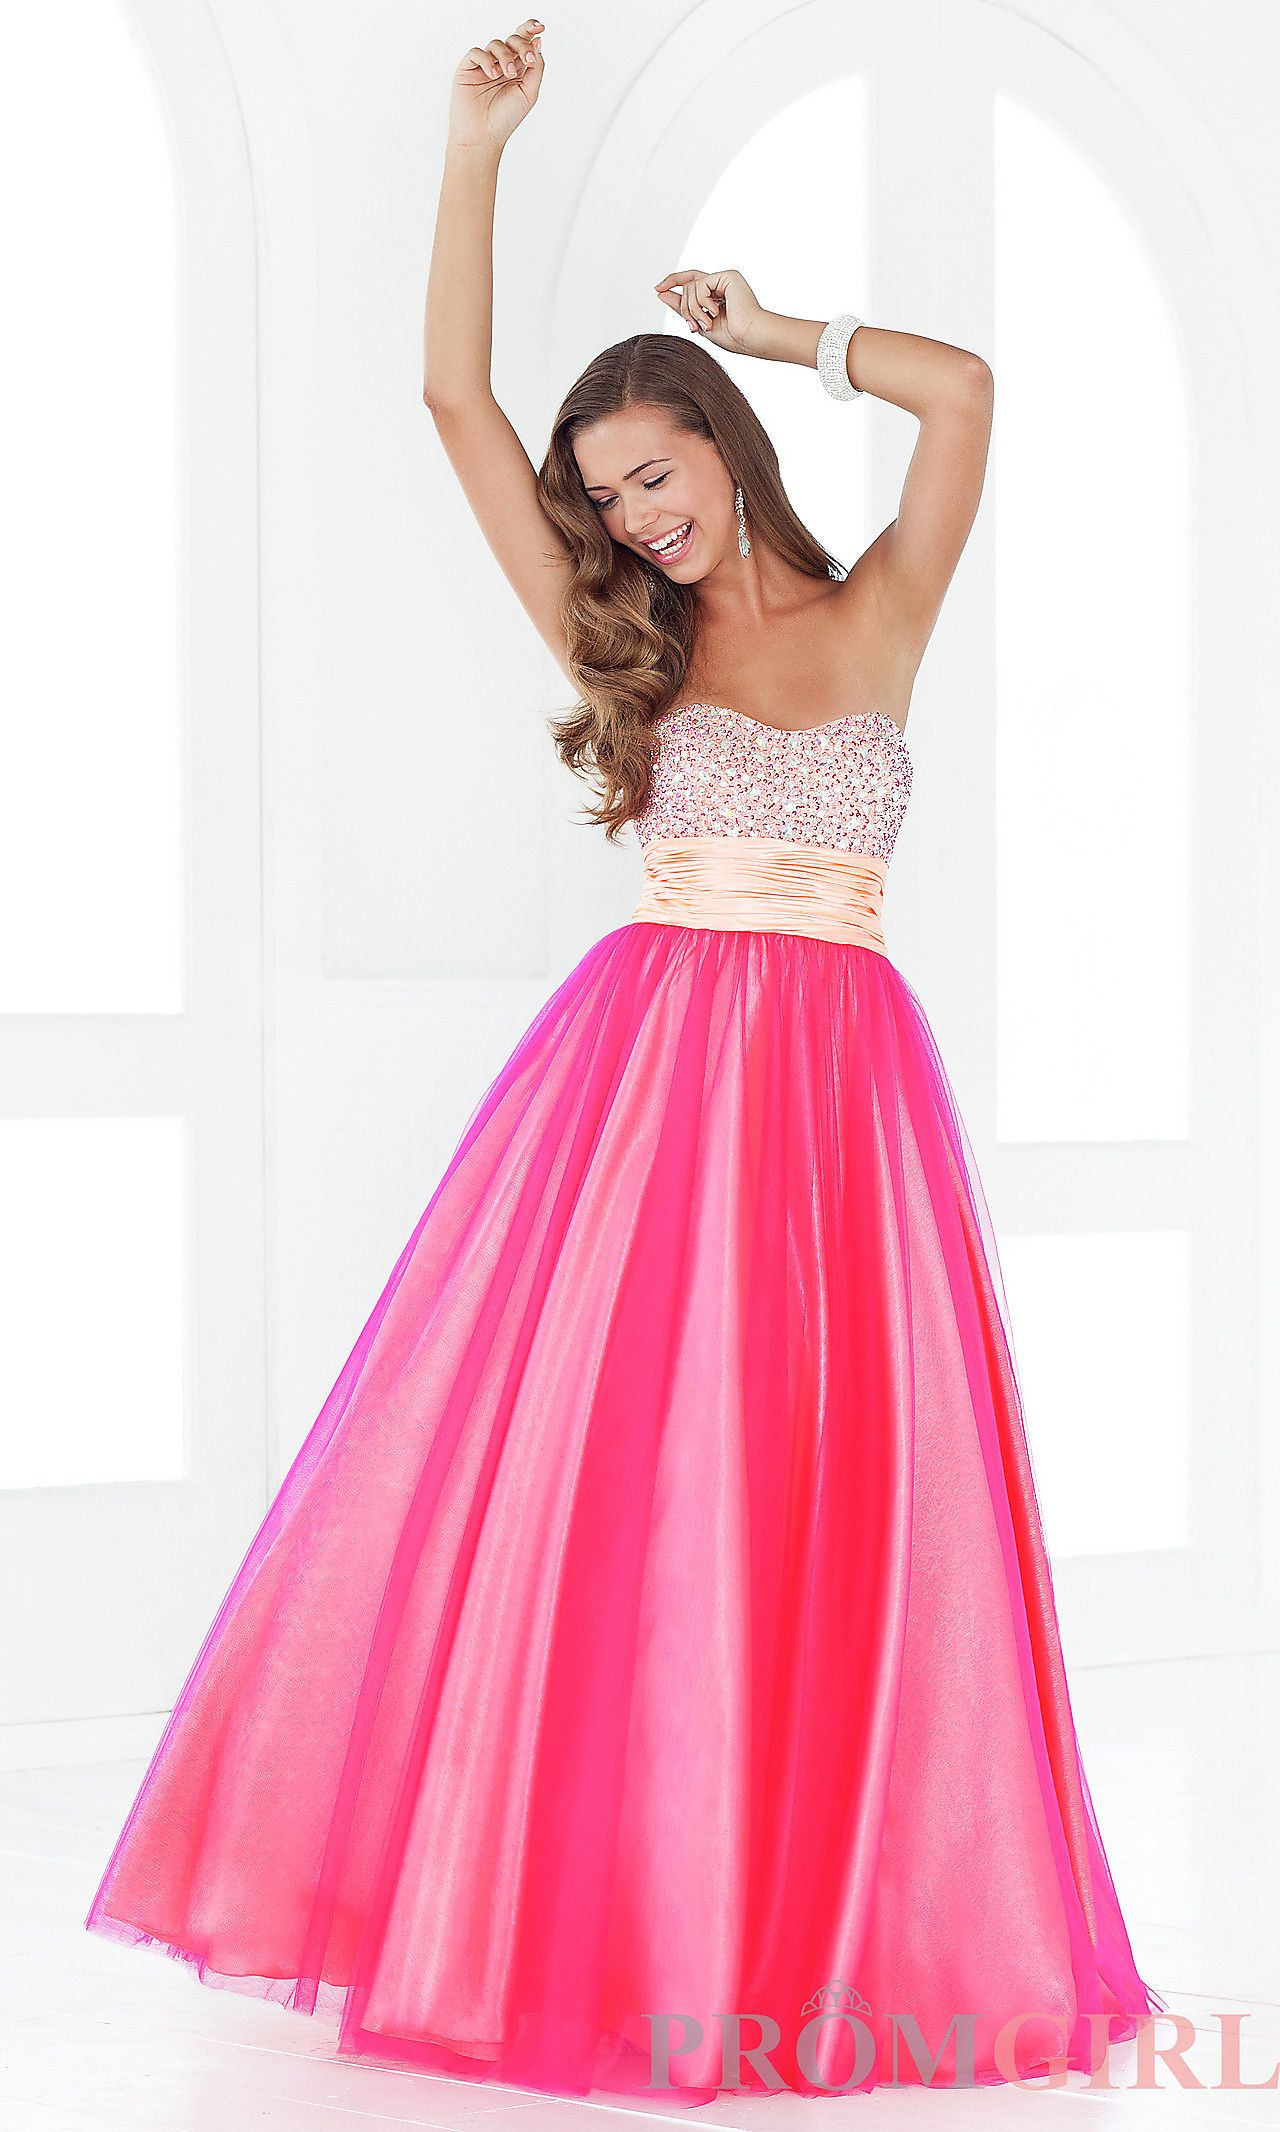 Strapless Ballgown 5131 by Blush BL-5131 | Prom Ideas ♡ | Pinterest